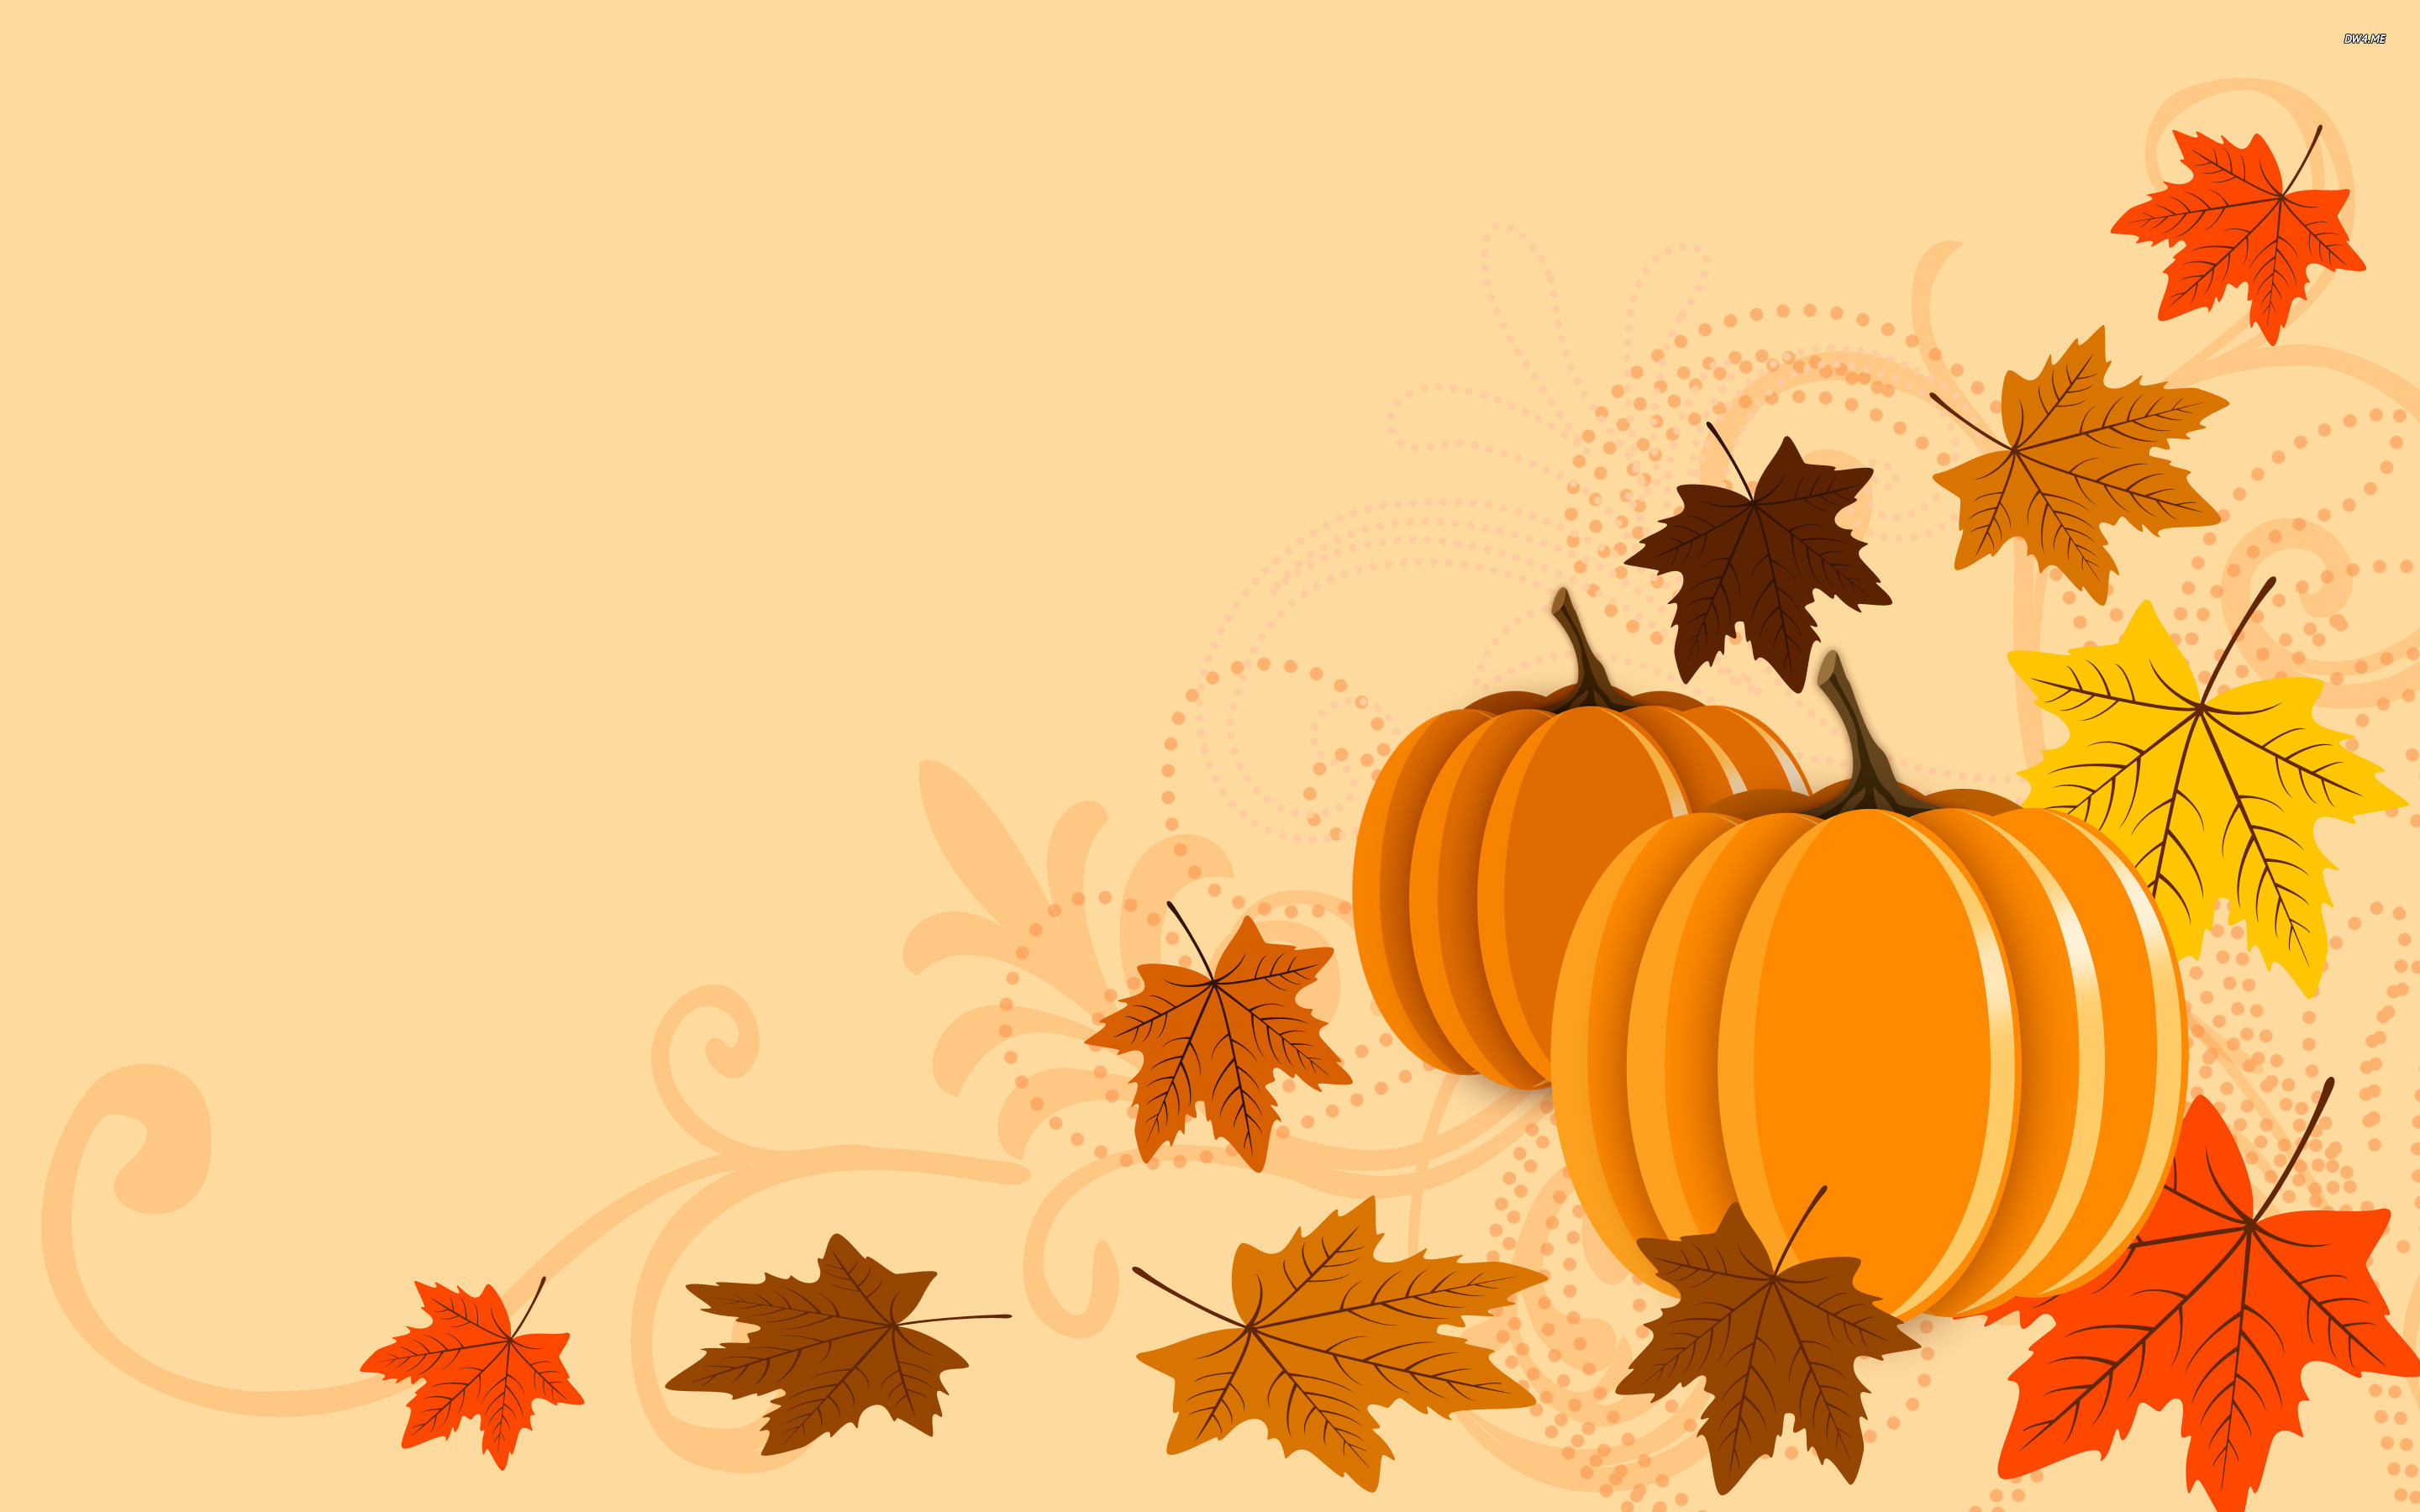 Disney Thanksgiving Desktop Wallpaper (59+ Images